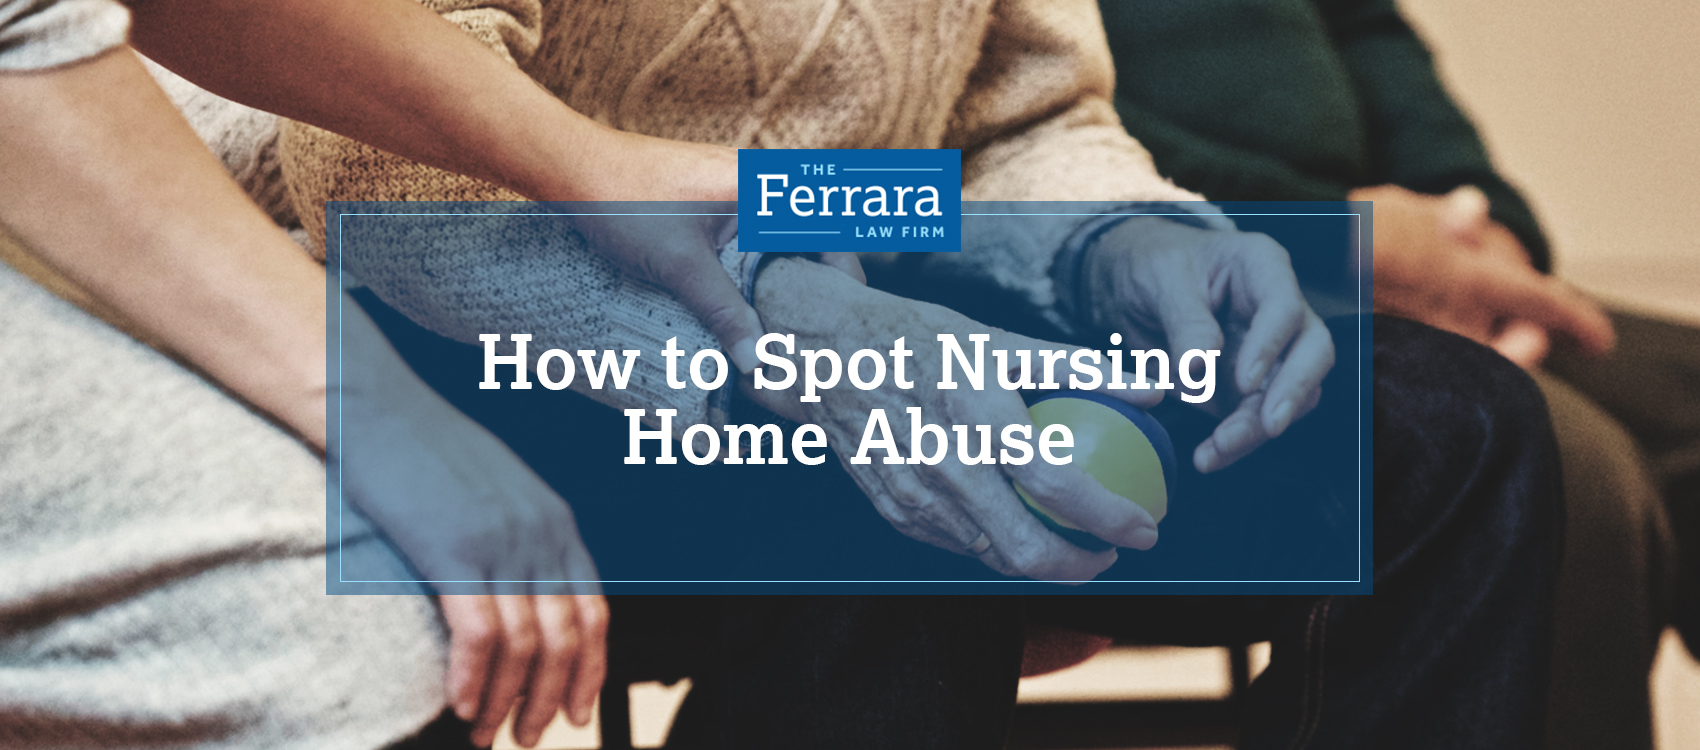 How to Spot Nursing Home Abuse